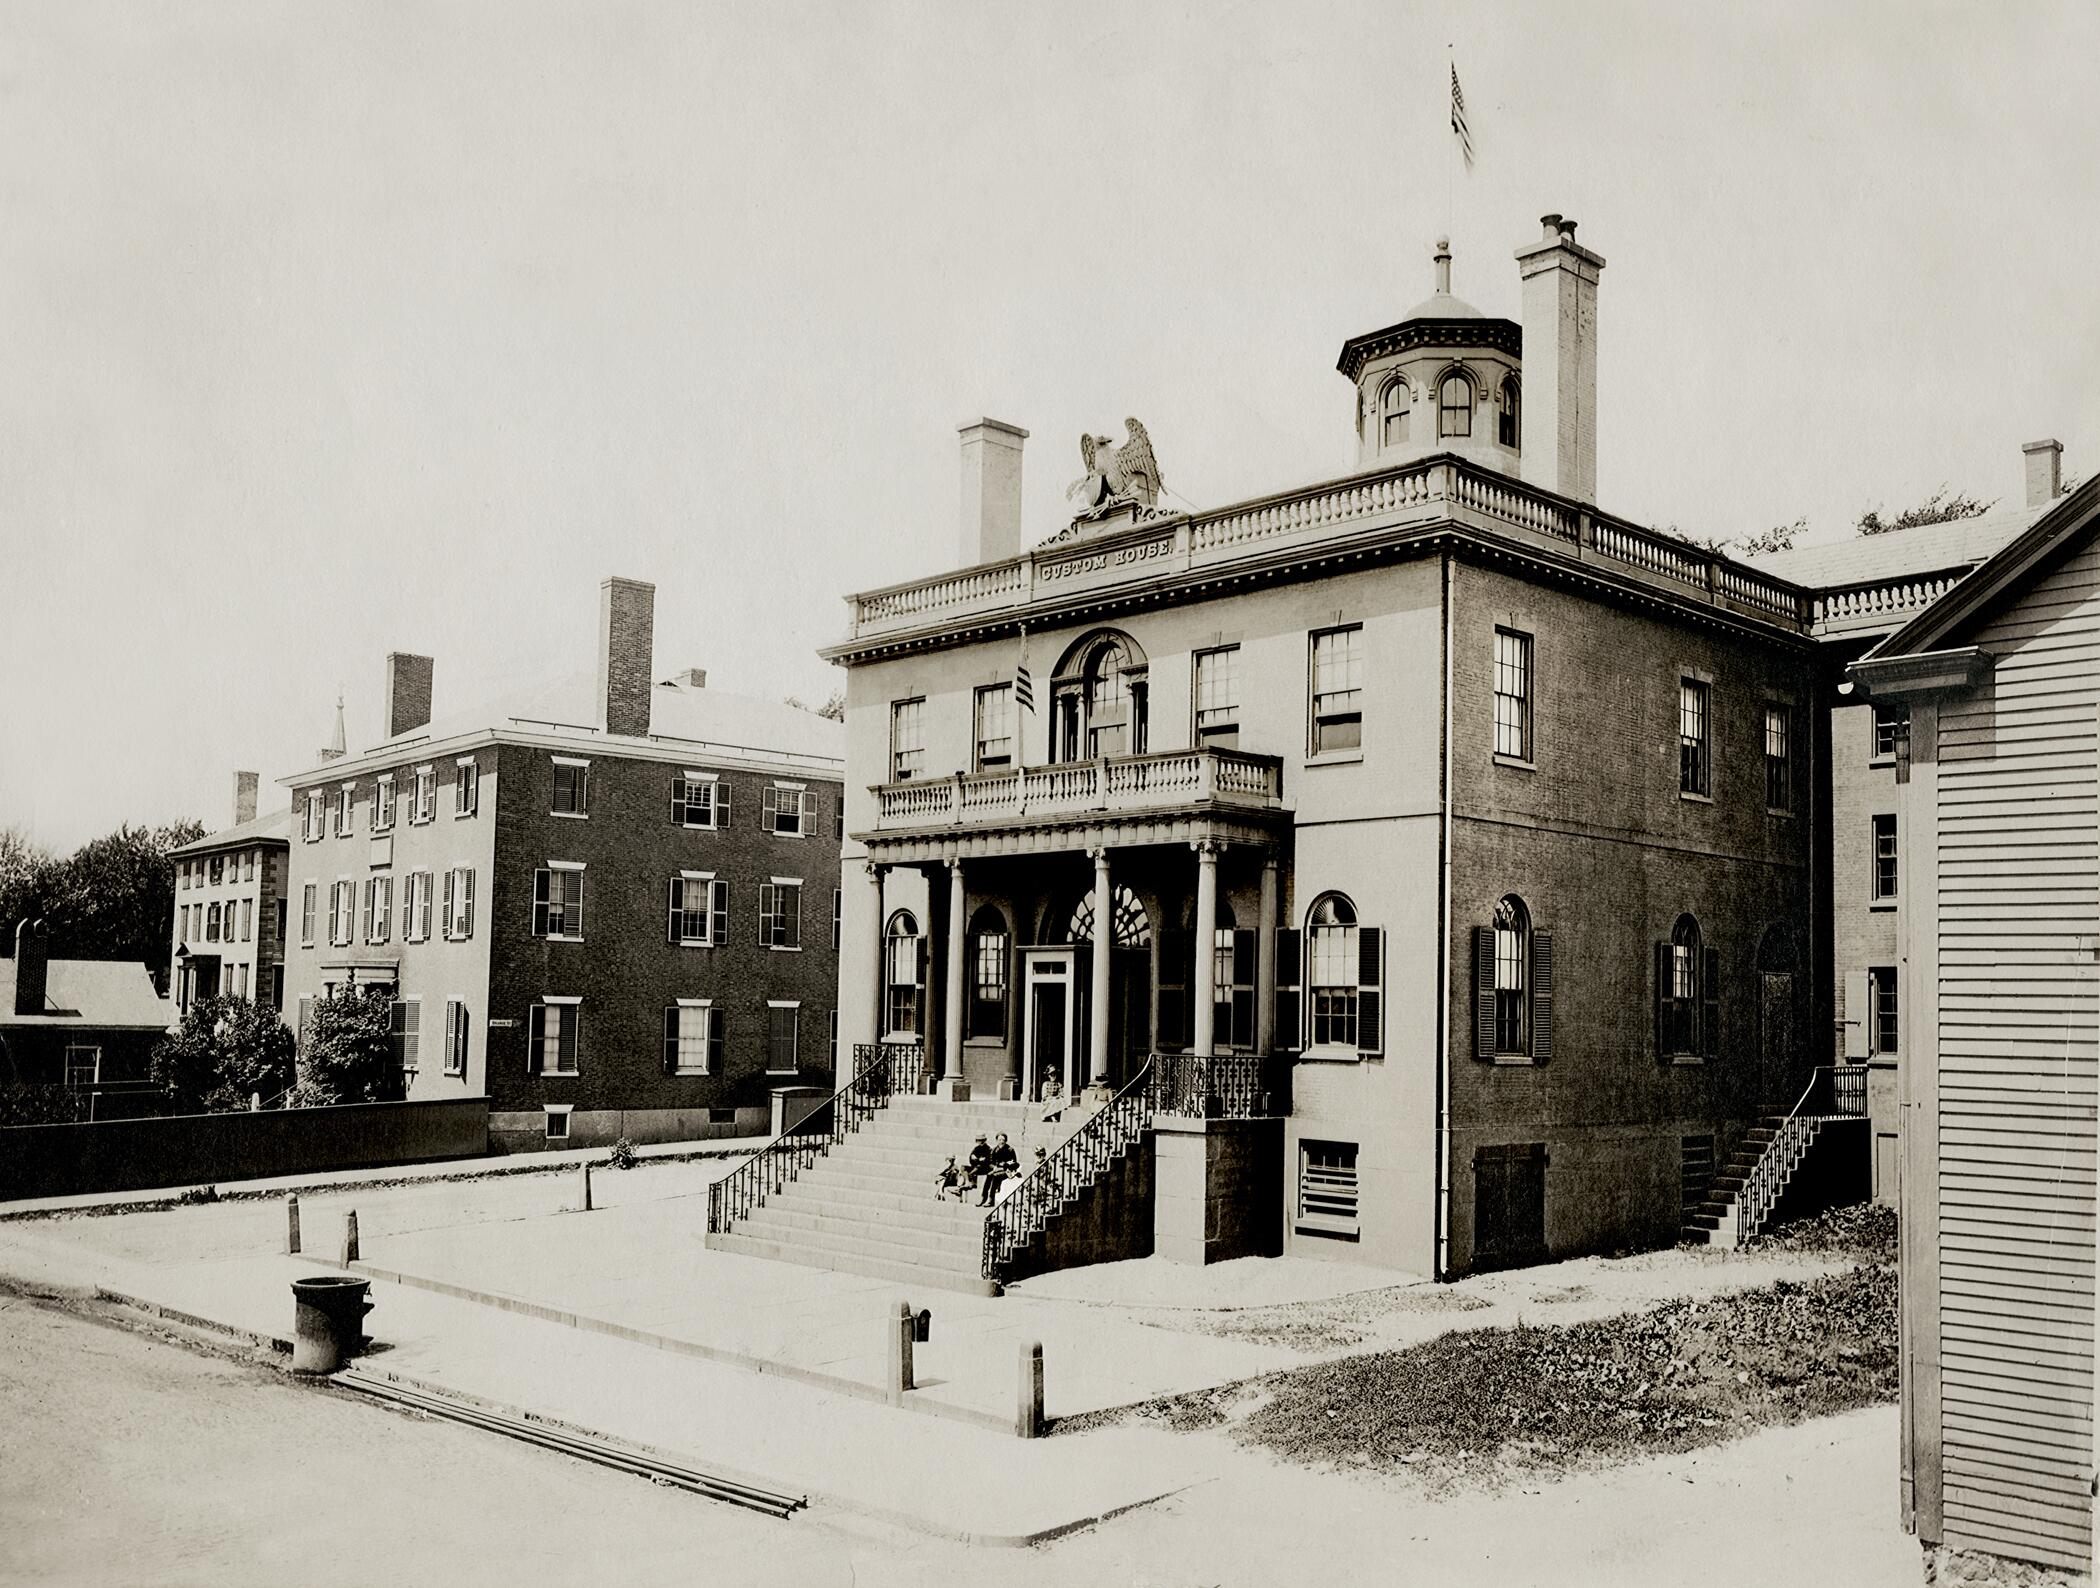 The Custom House at Salem, Mass.Nathaniel Hawthorne served as customs surveyor for the Port of Salem in this customhouse from 1846-1849. The Surveyor's office was located on the first floor, to the left of the main entrance, with large windows overlooking Derby Wharf, where Hawthorne would gaze in anticipation of a ship's arrival.